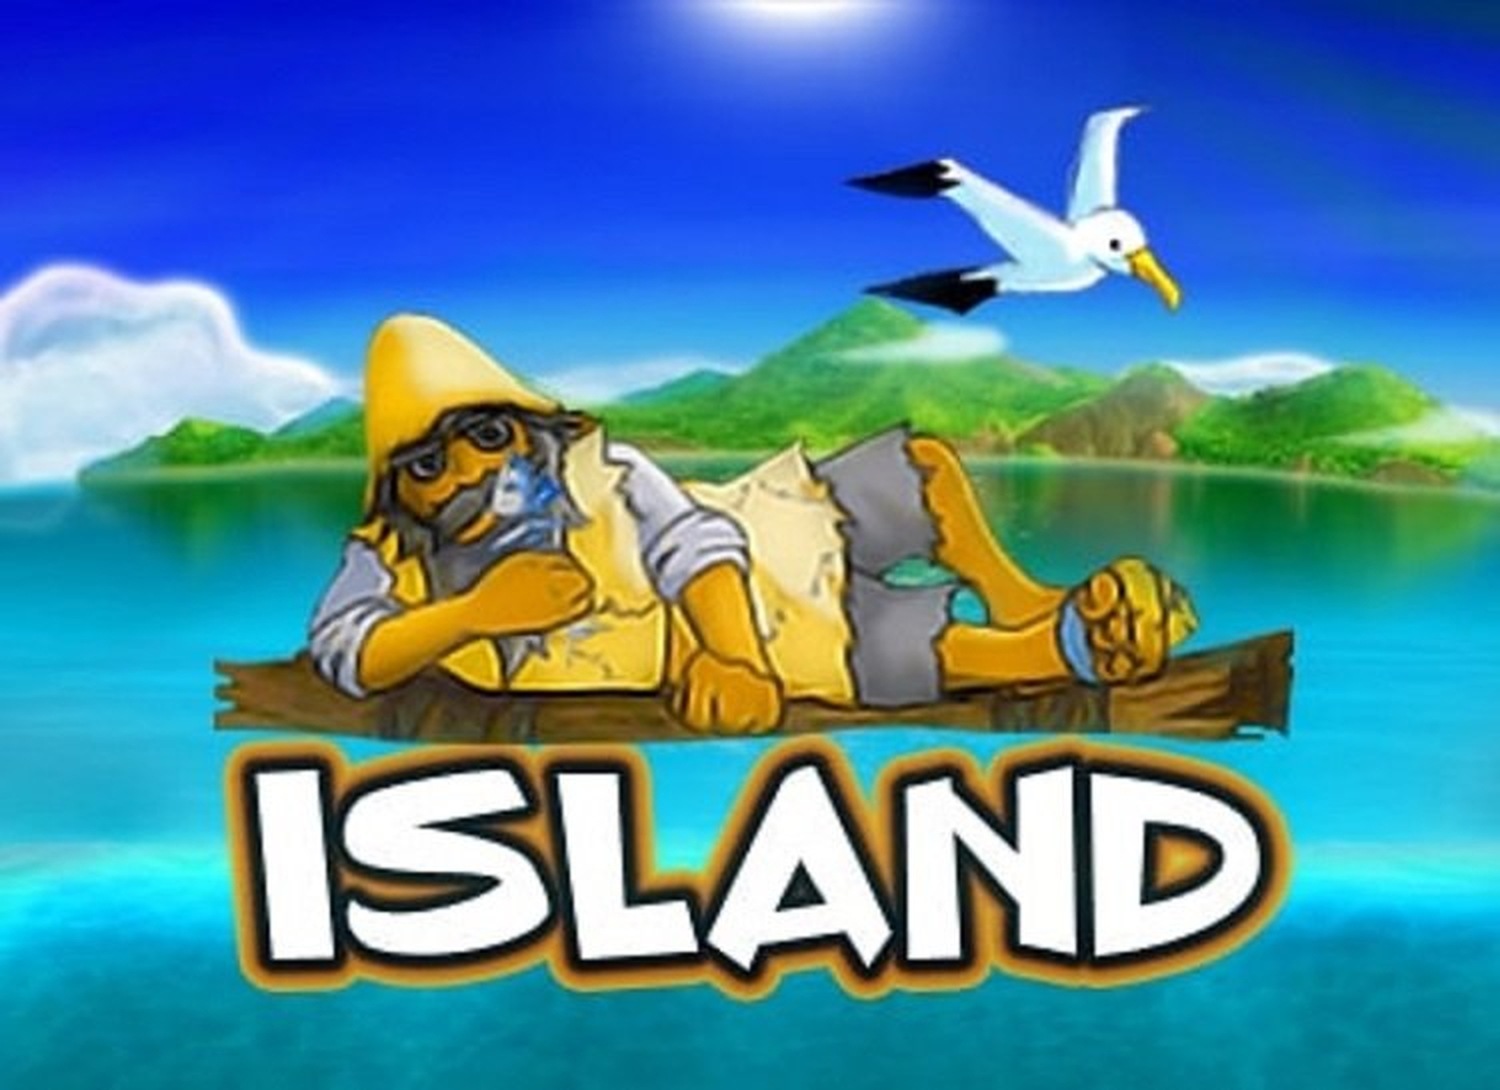 The Island Online Slot Demo Game by Igrosoft